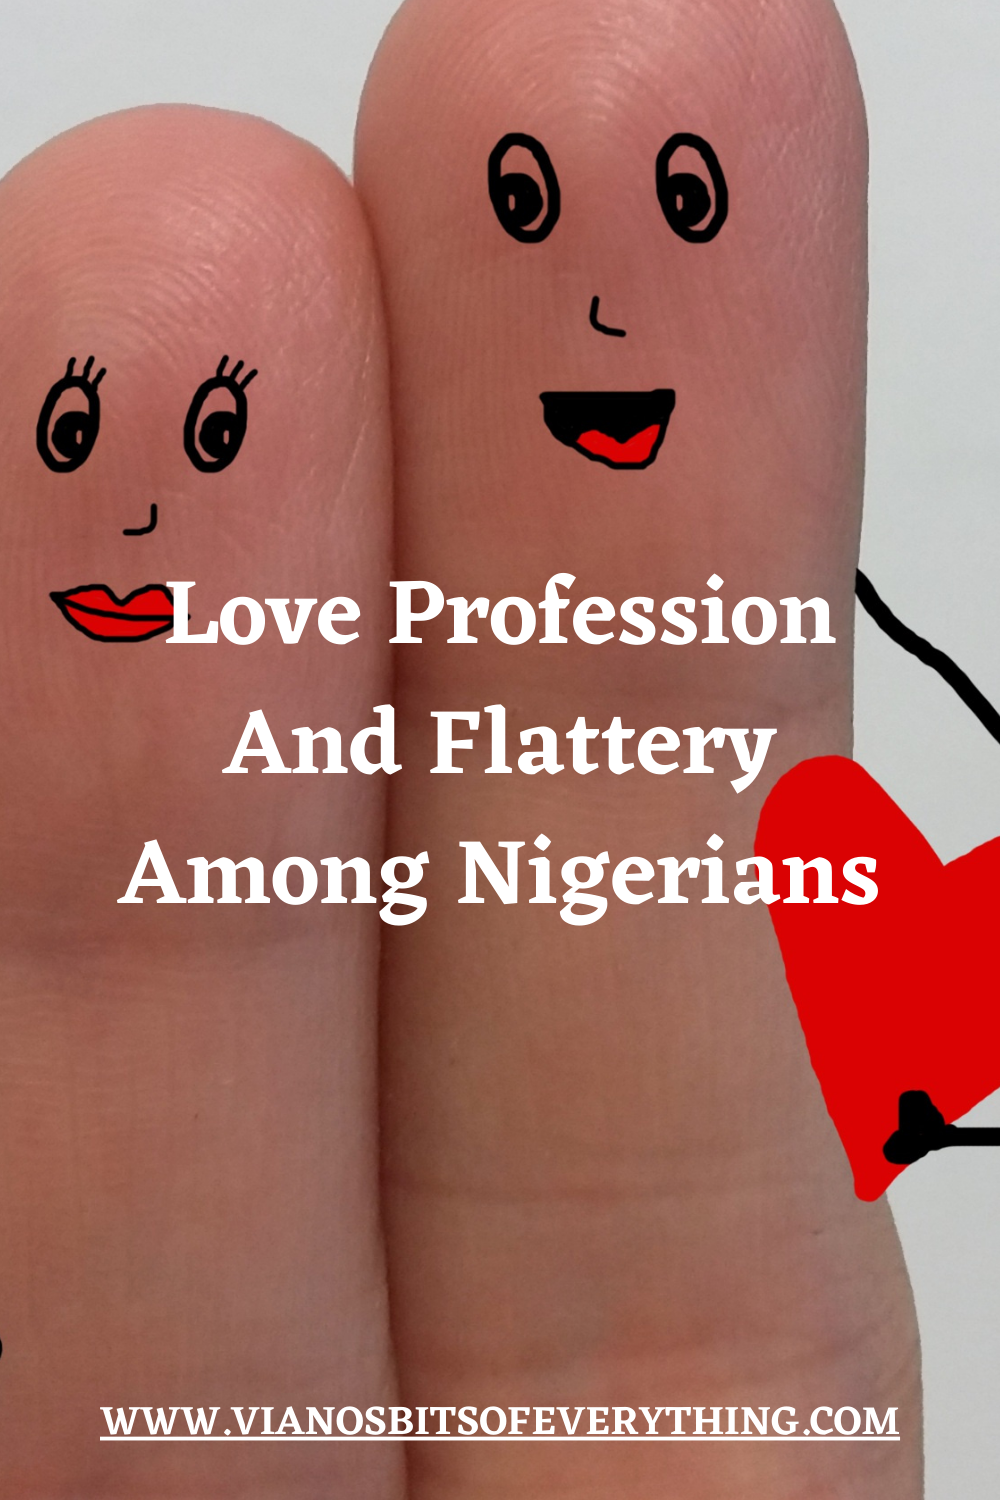 Love Profession And Flattery Among Nigerians